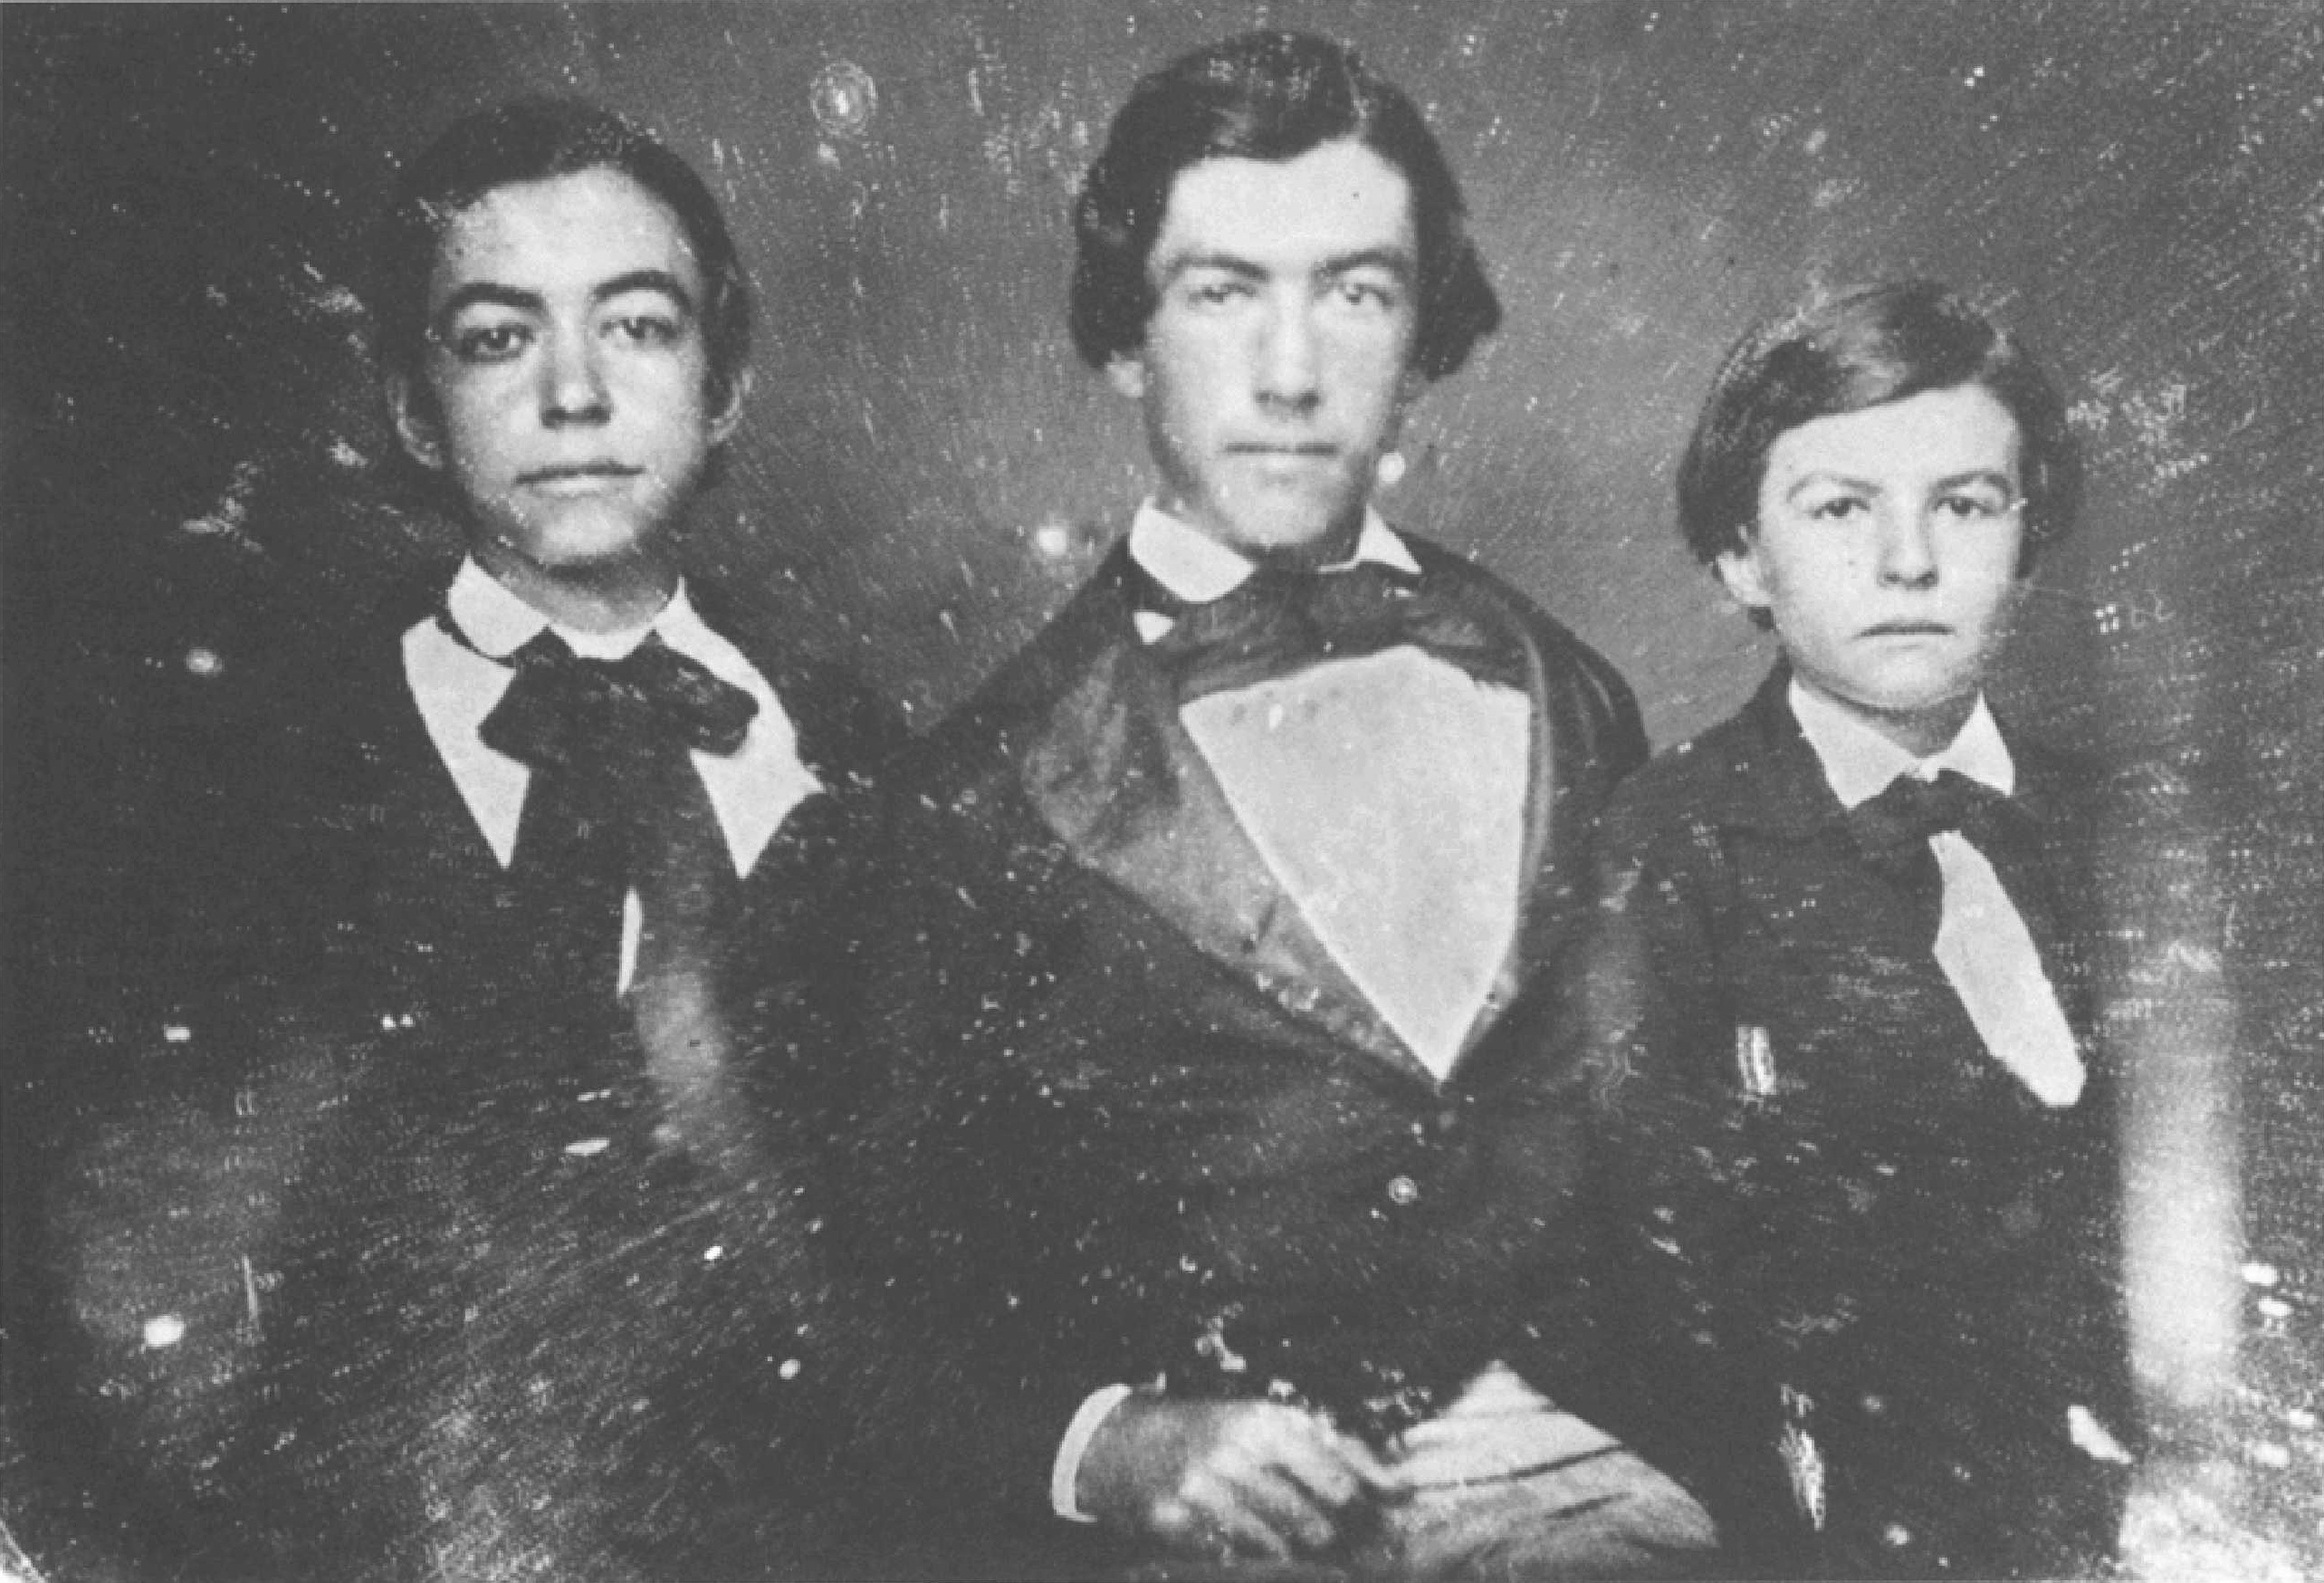 brotherhood family and lyman Born circa 1822 in vt, elias lyman briggs married jane johnson 8 june 1843 marriage was recorded in van buren county (iowa territory) by 1850, the couple lived in union, davis county, iowa iowa census entries of the briggs' households 1850 through 1870 list children of abington, harriet j, henry.